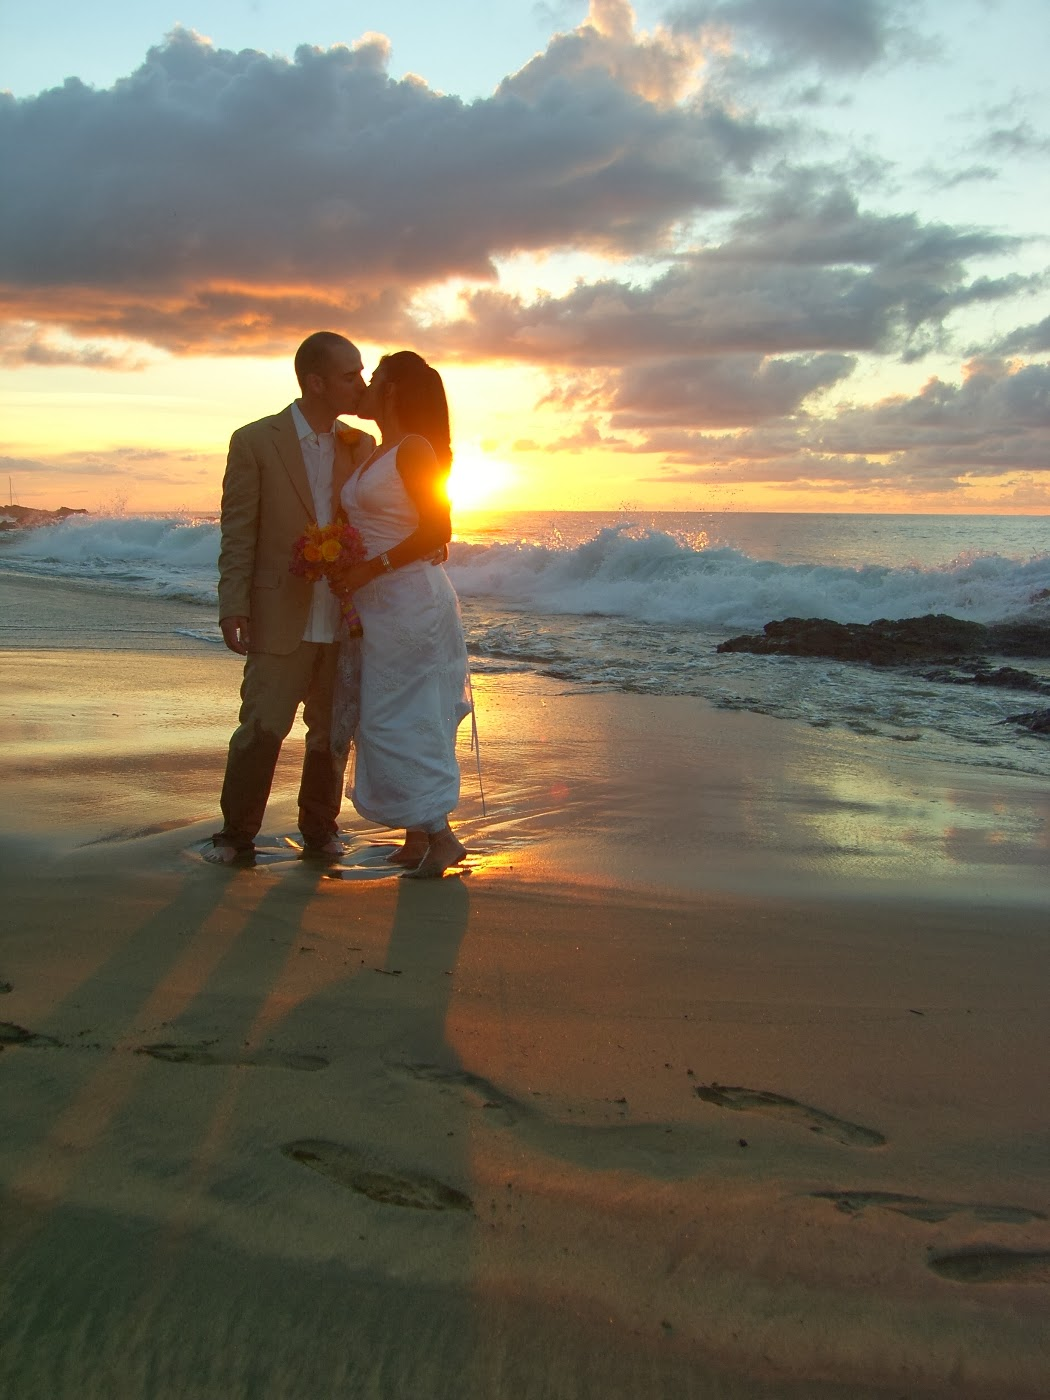 romantic sunset at seashore - photo #21